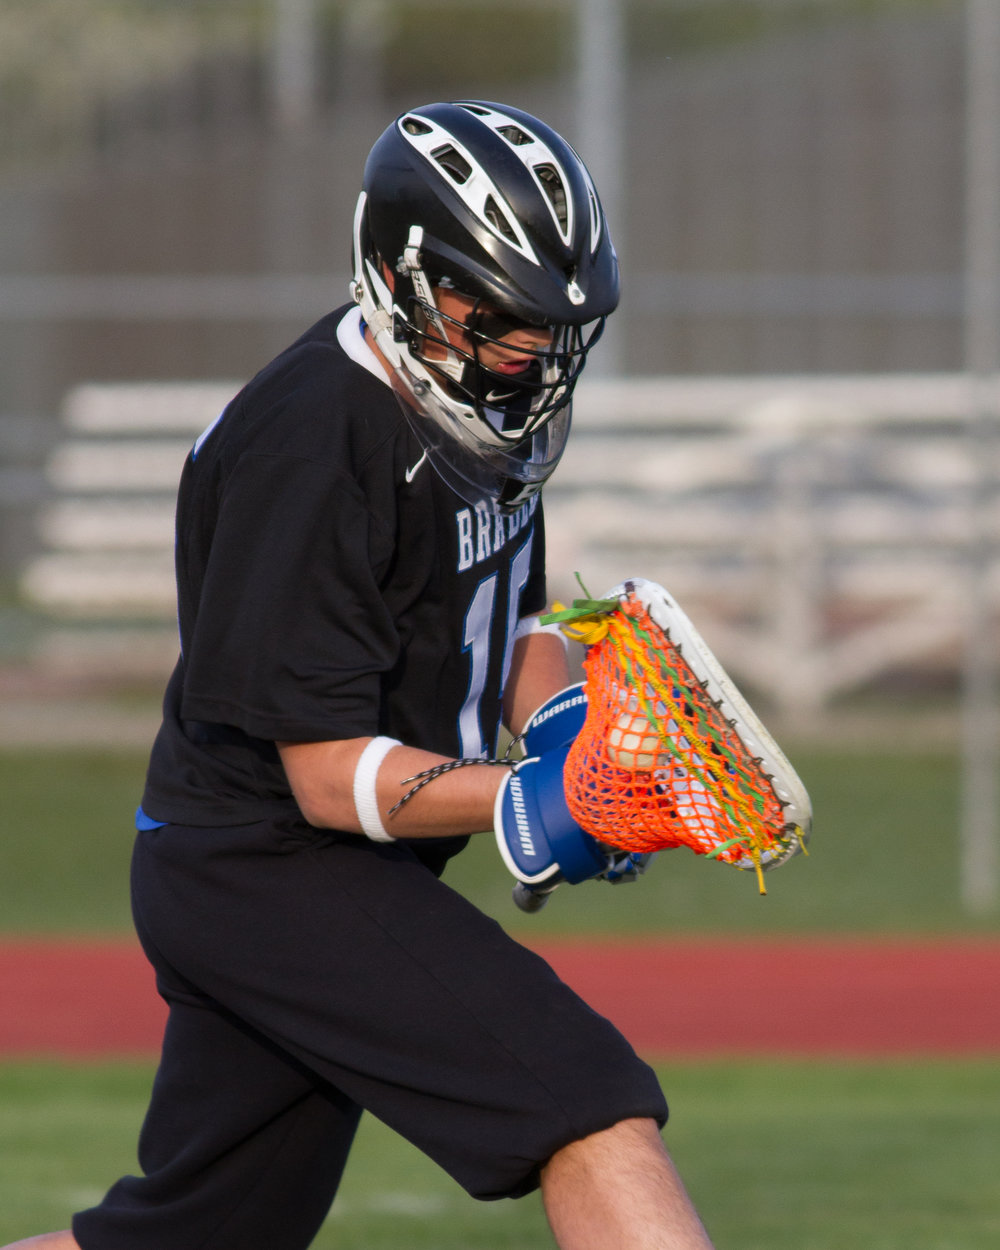 High school lax | Andrew Warner Photography | sports | fitness | lacrosse